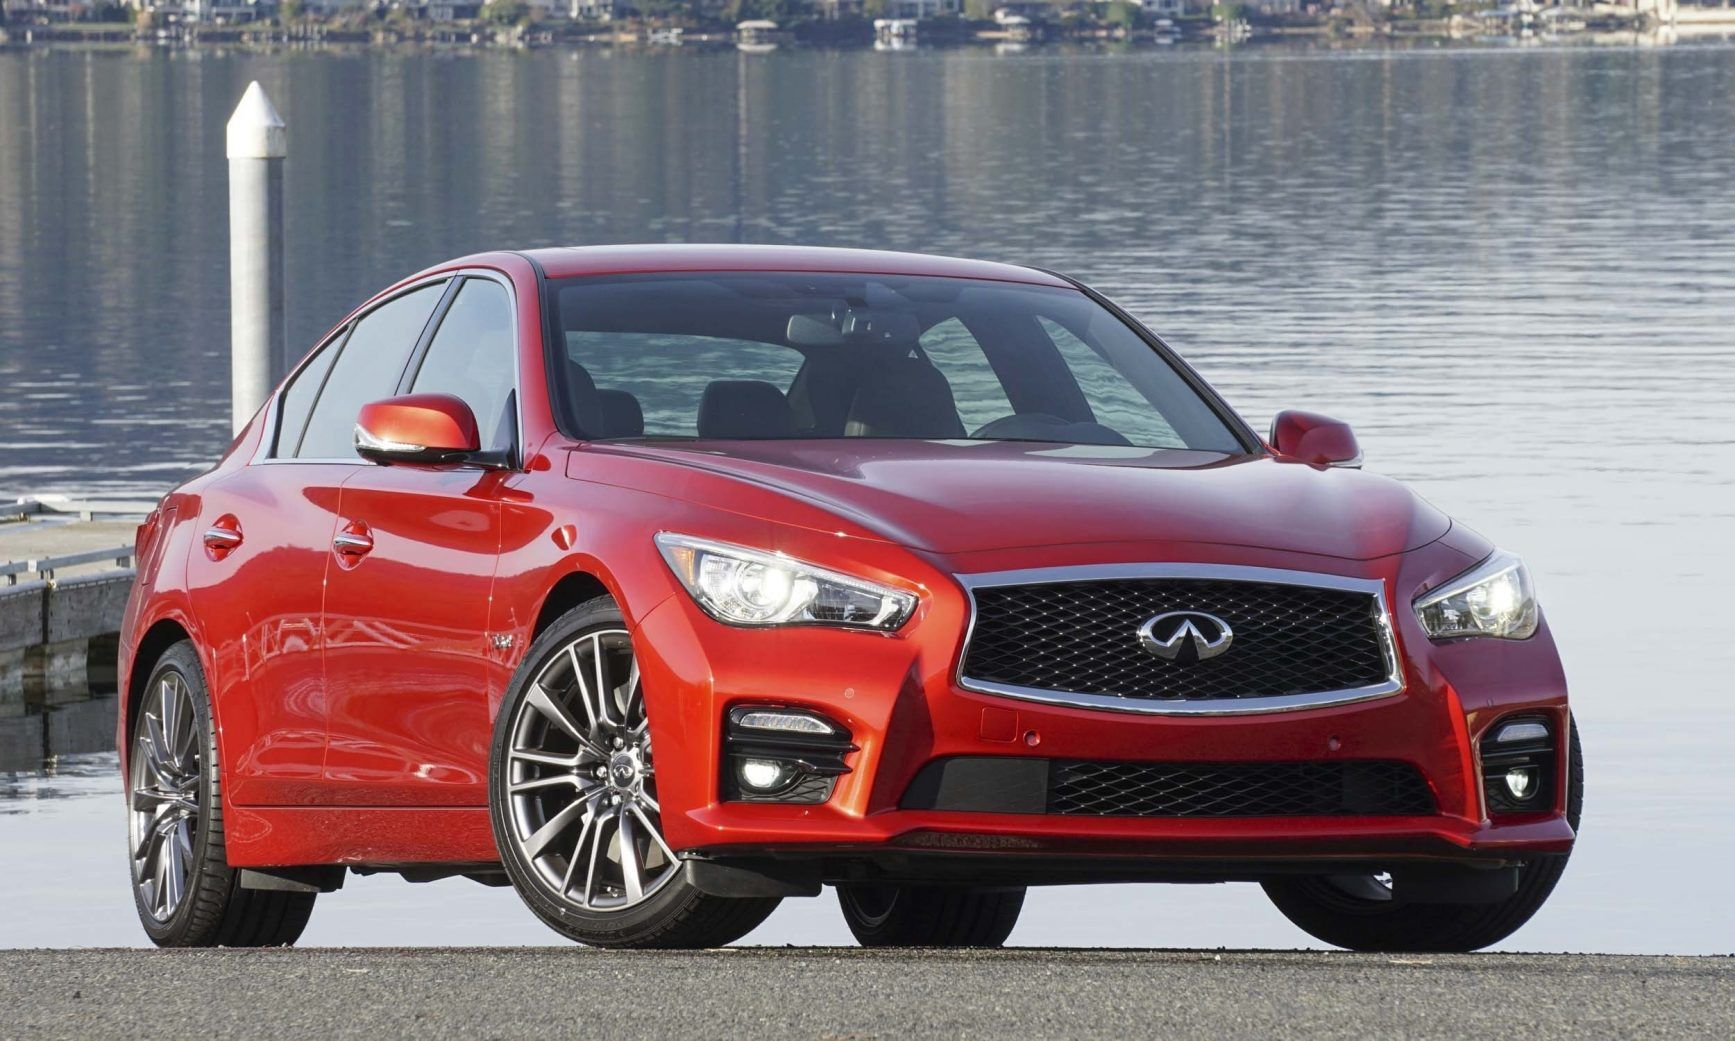 2020 Infiniti Q50 Review Price Engine Release Date Changes Photos Drone